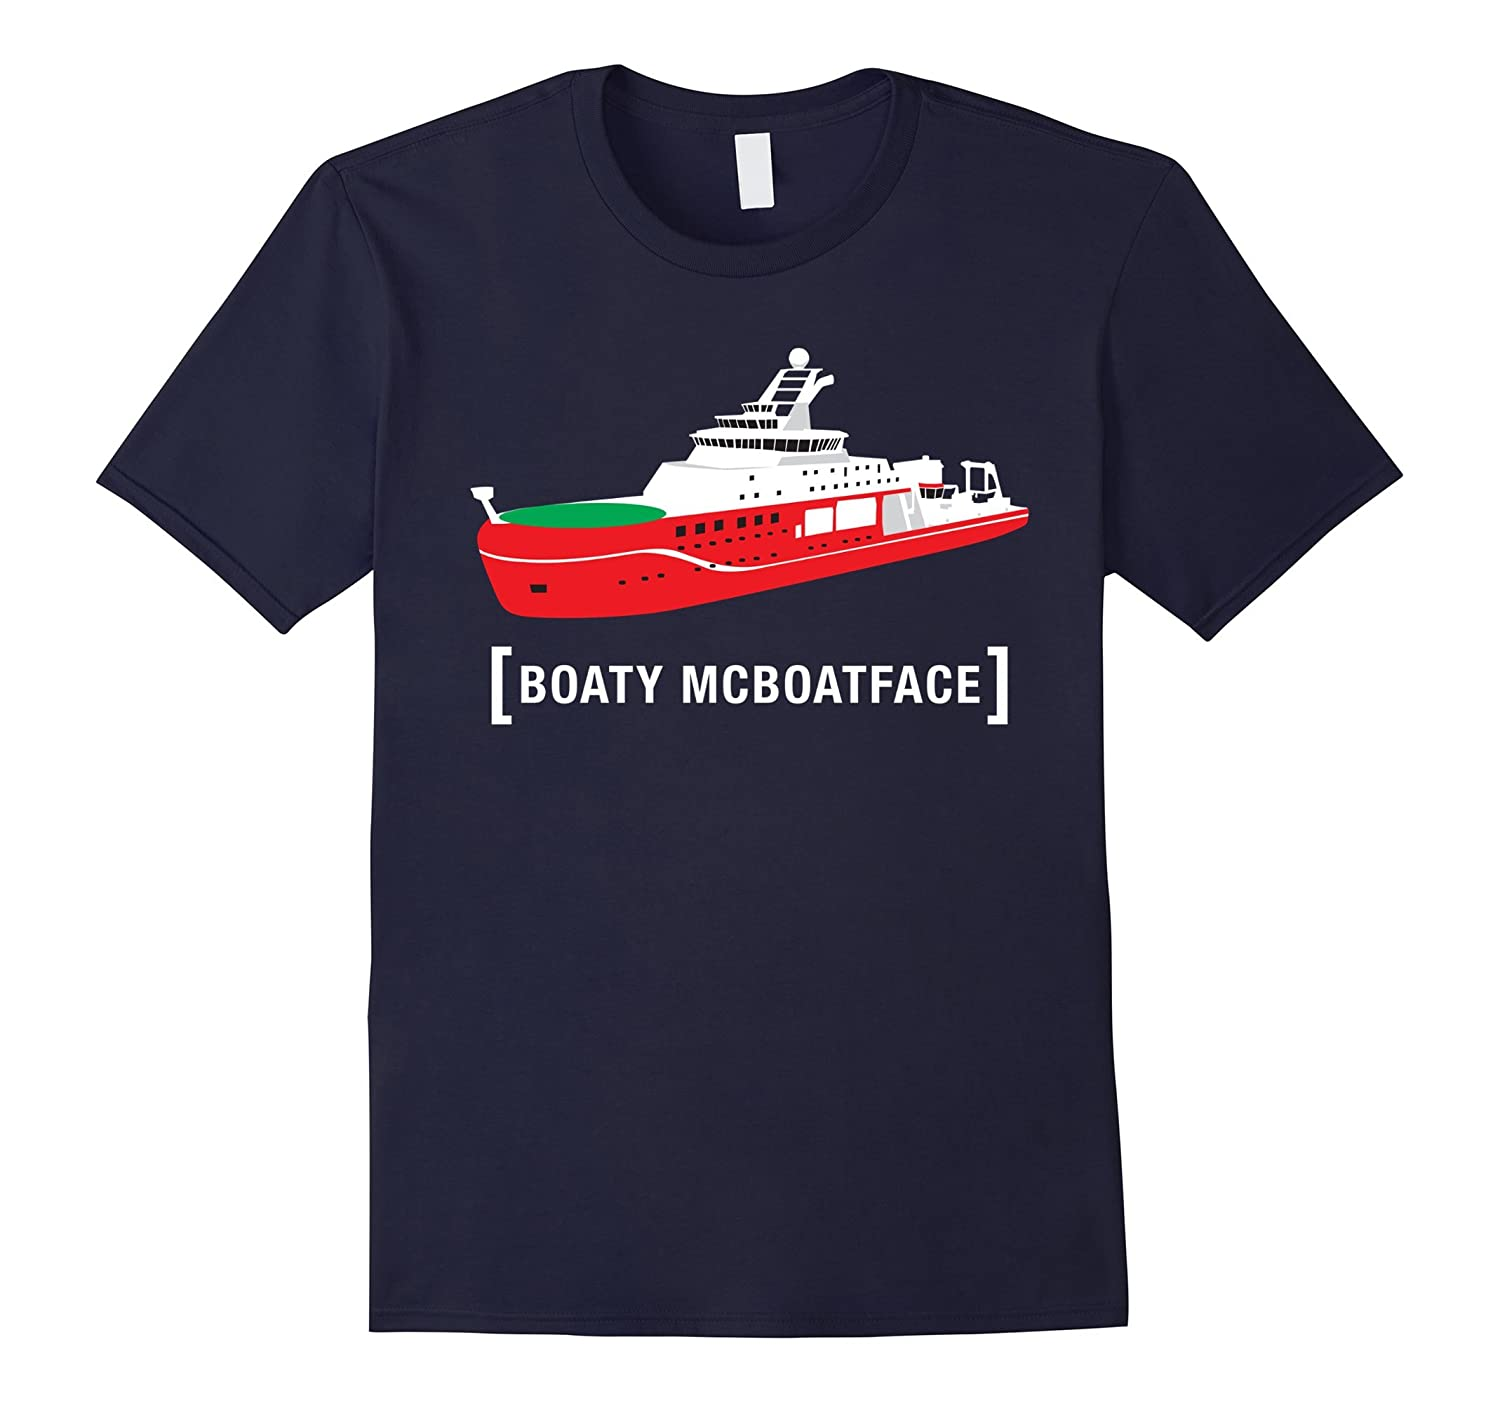 Boaty McBoatface Shirt RRS McBoat Ship Funny Trendy Gift-TD